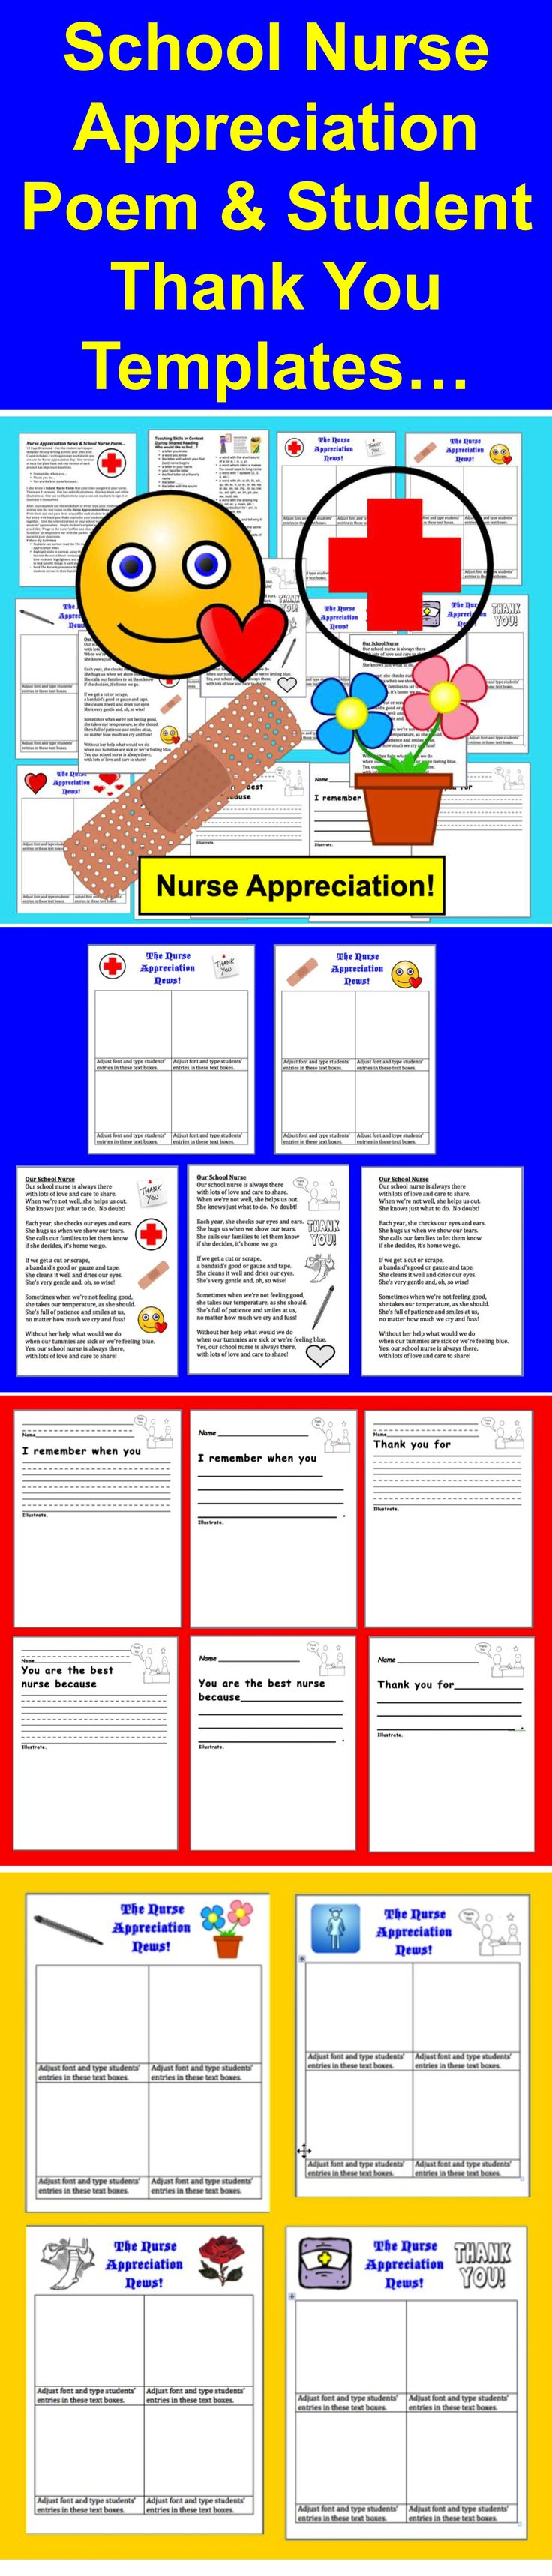 $ Nurse Appreciation News & School Nurse Poem… 19 Page Download - Use this student newspaper template for any writing activity year after year. I have included 3 writing prompt worksheets you can use for Nurse Appreciation Day. One version of each has plain lines and one version of each prompt has skip count baselines.